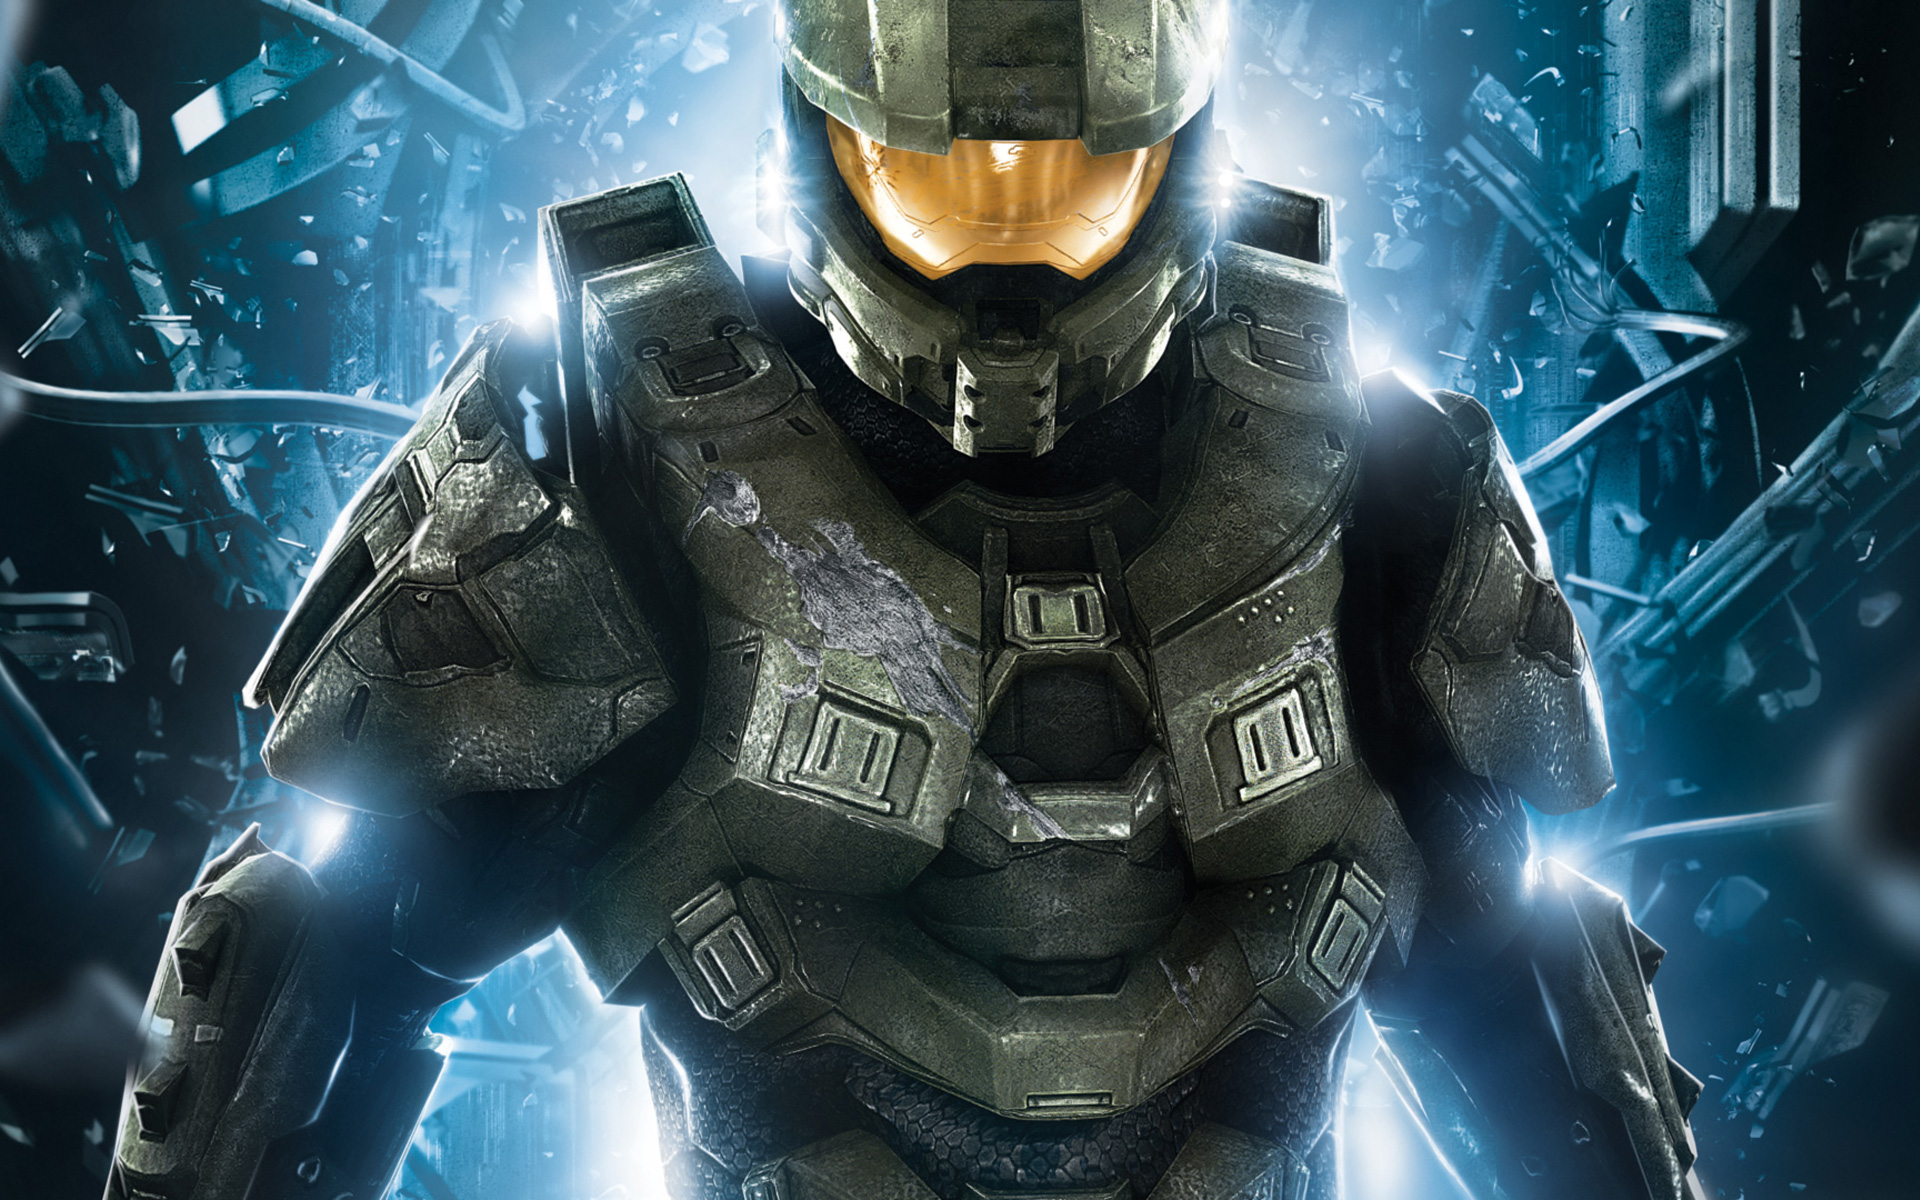 Awesome Halo 4 Wallpapers for your Desktop   Inspiration Hut 1920x1200